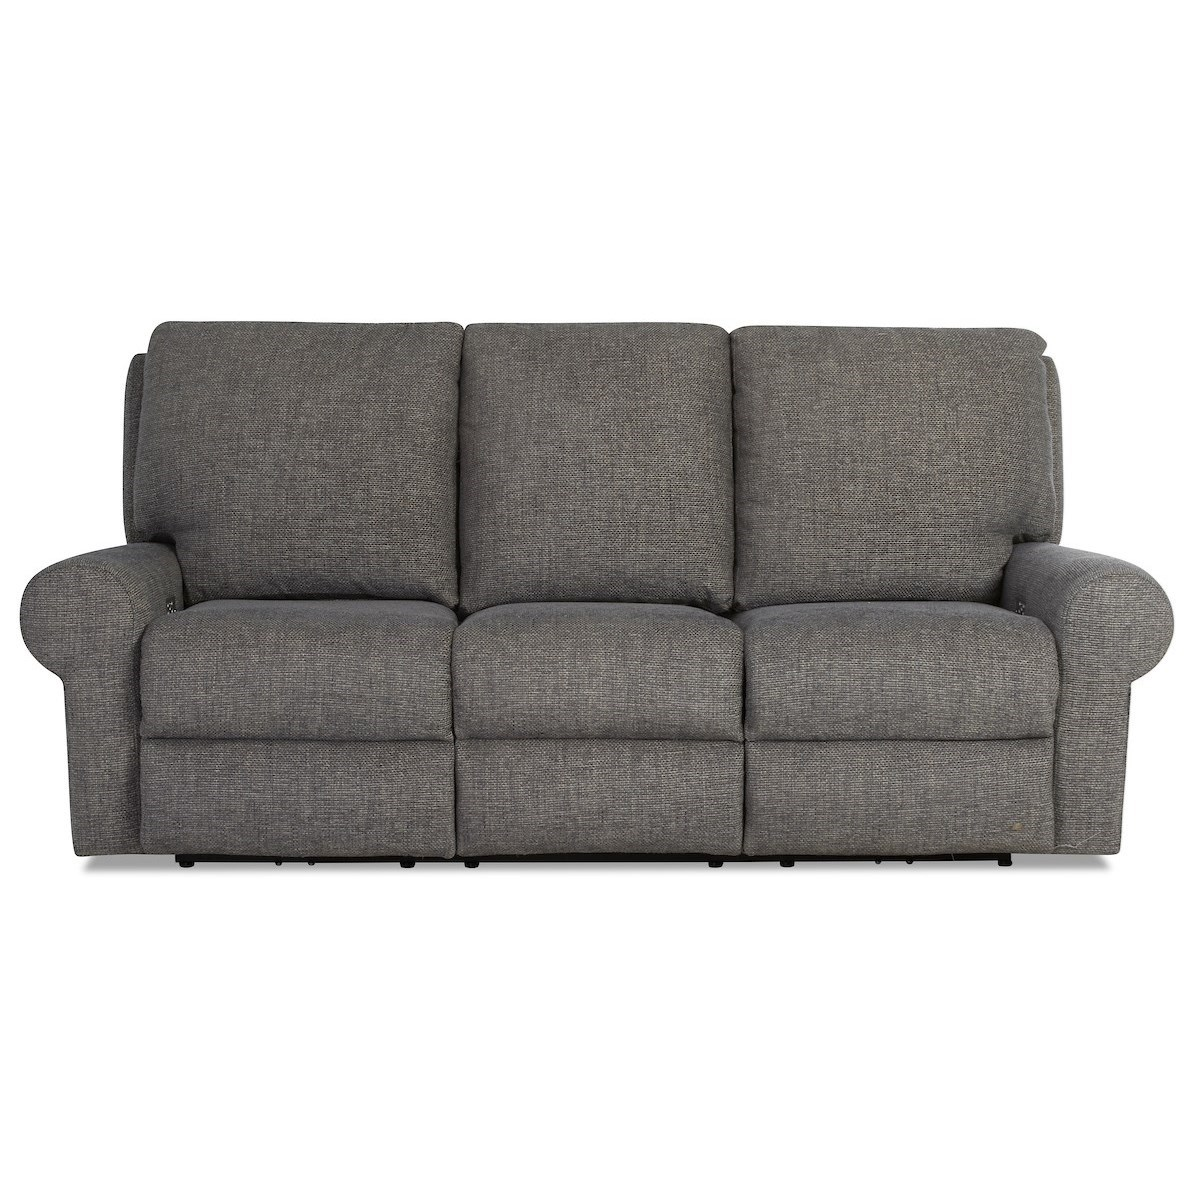 Eddison Power Reclining Sofa by Klaussner at Catalog Outlet